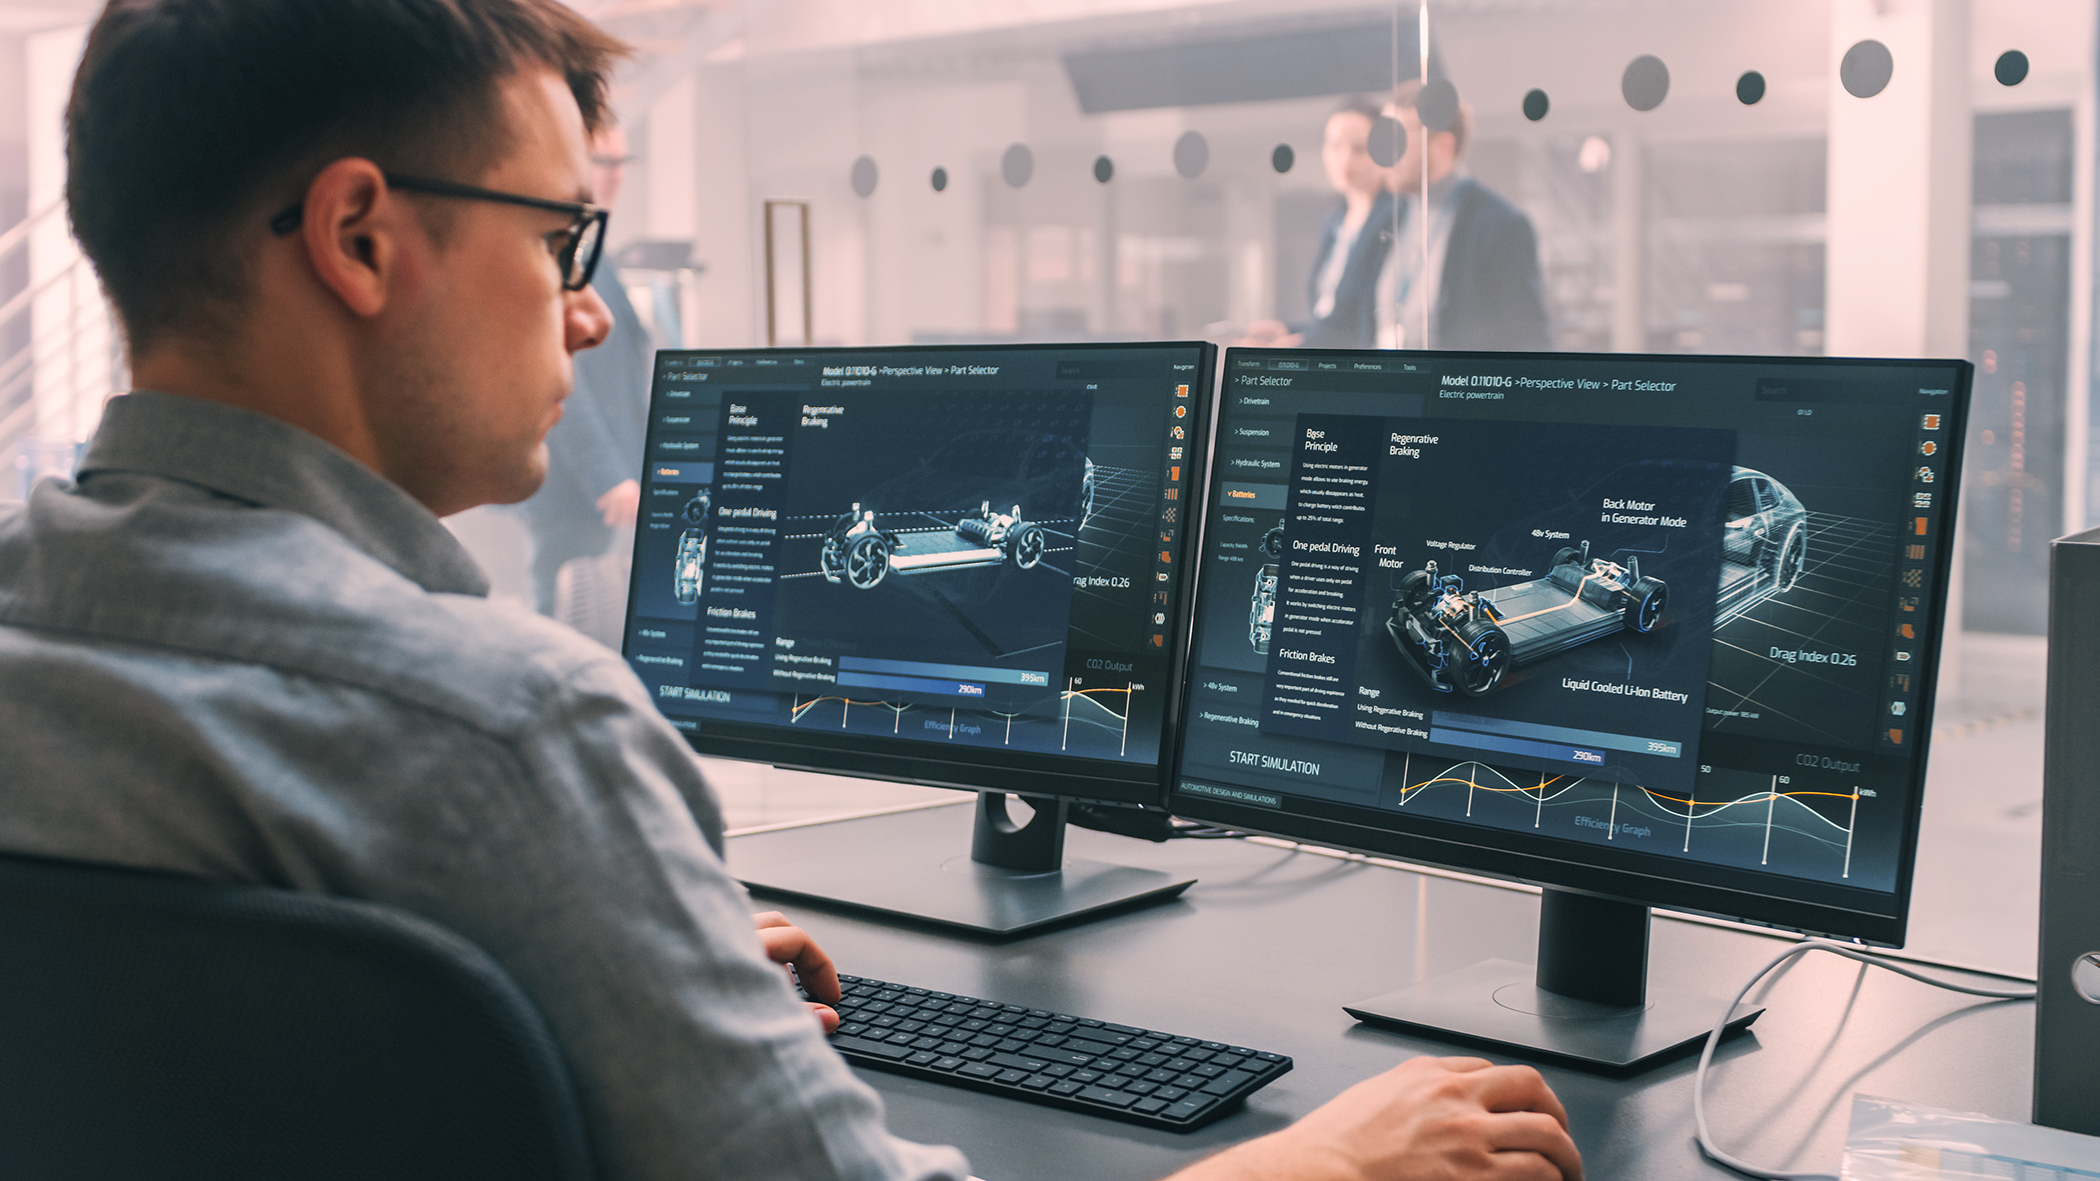 Software will play a key role in the cars of the future.